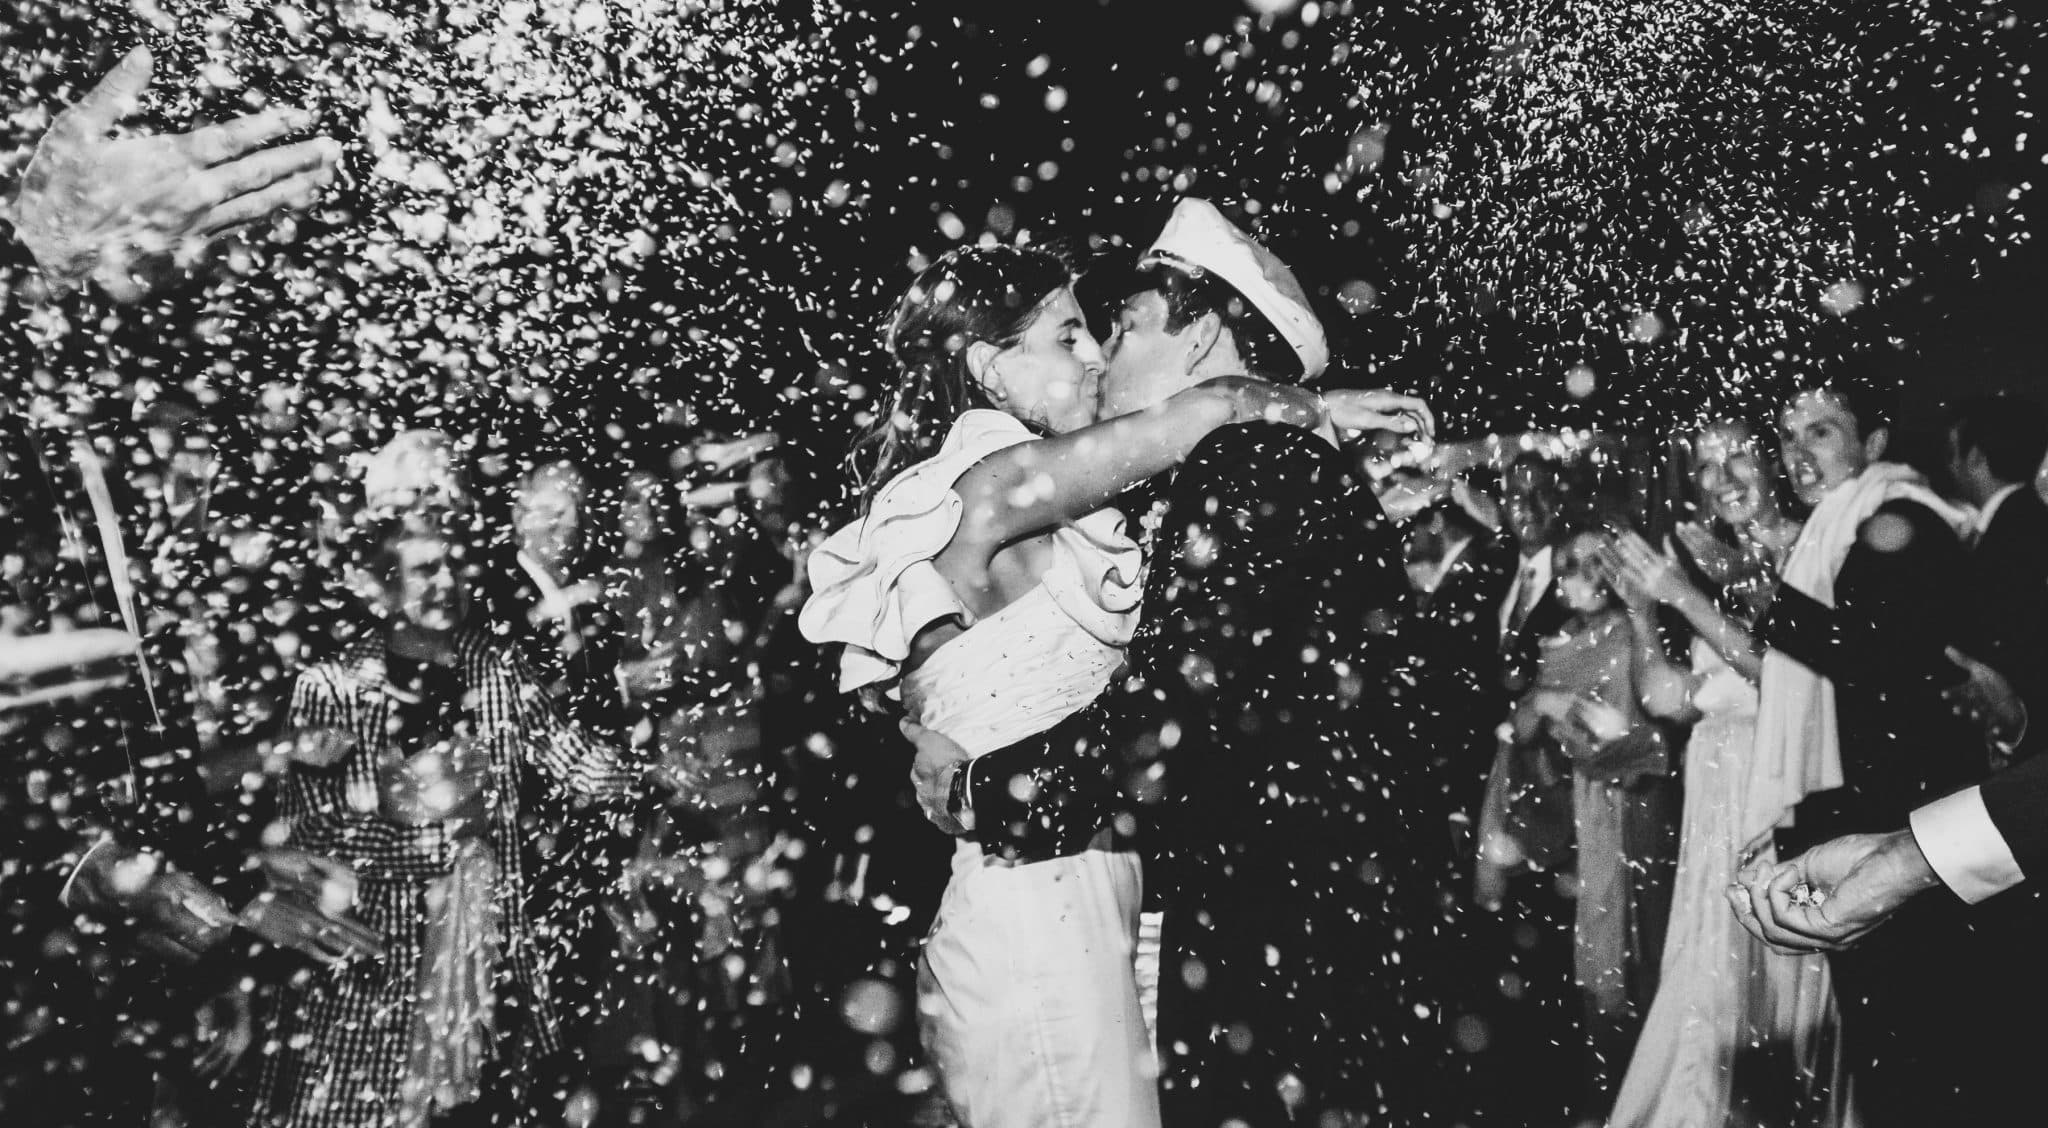 Eco-friendly bride and groom celebrate with water soluble confetti!